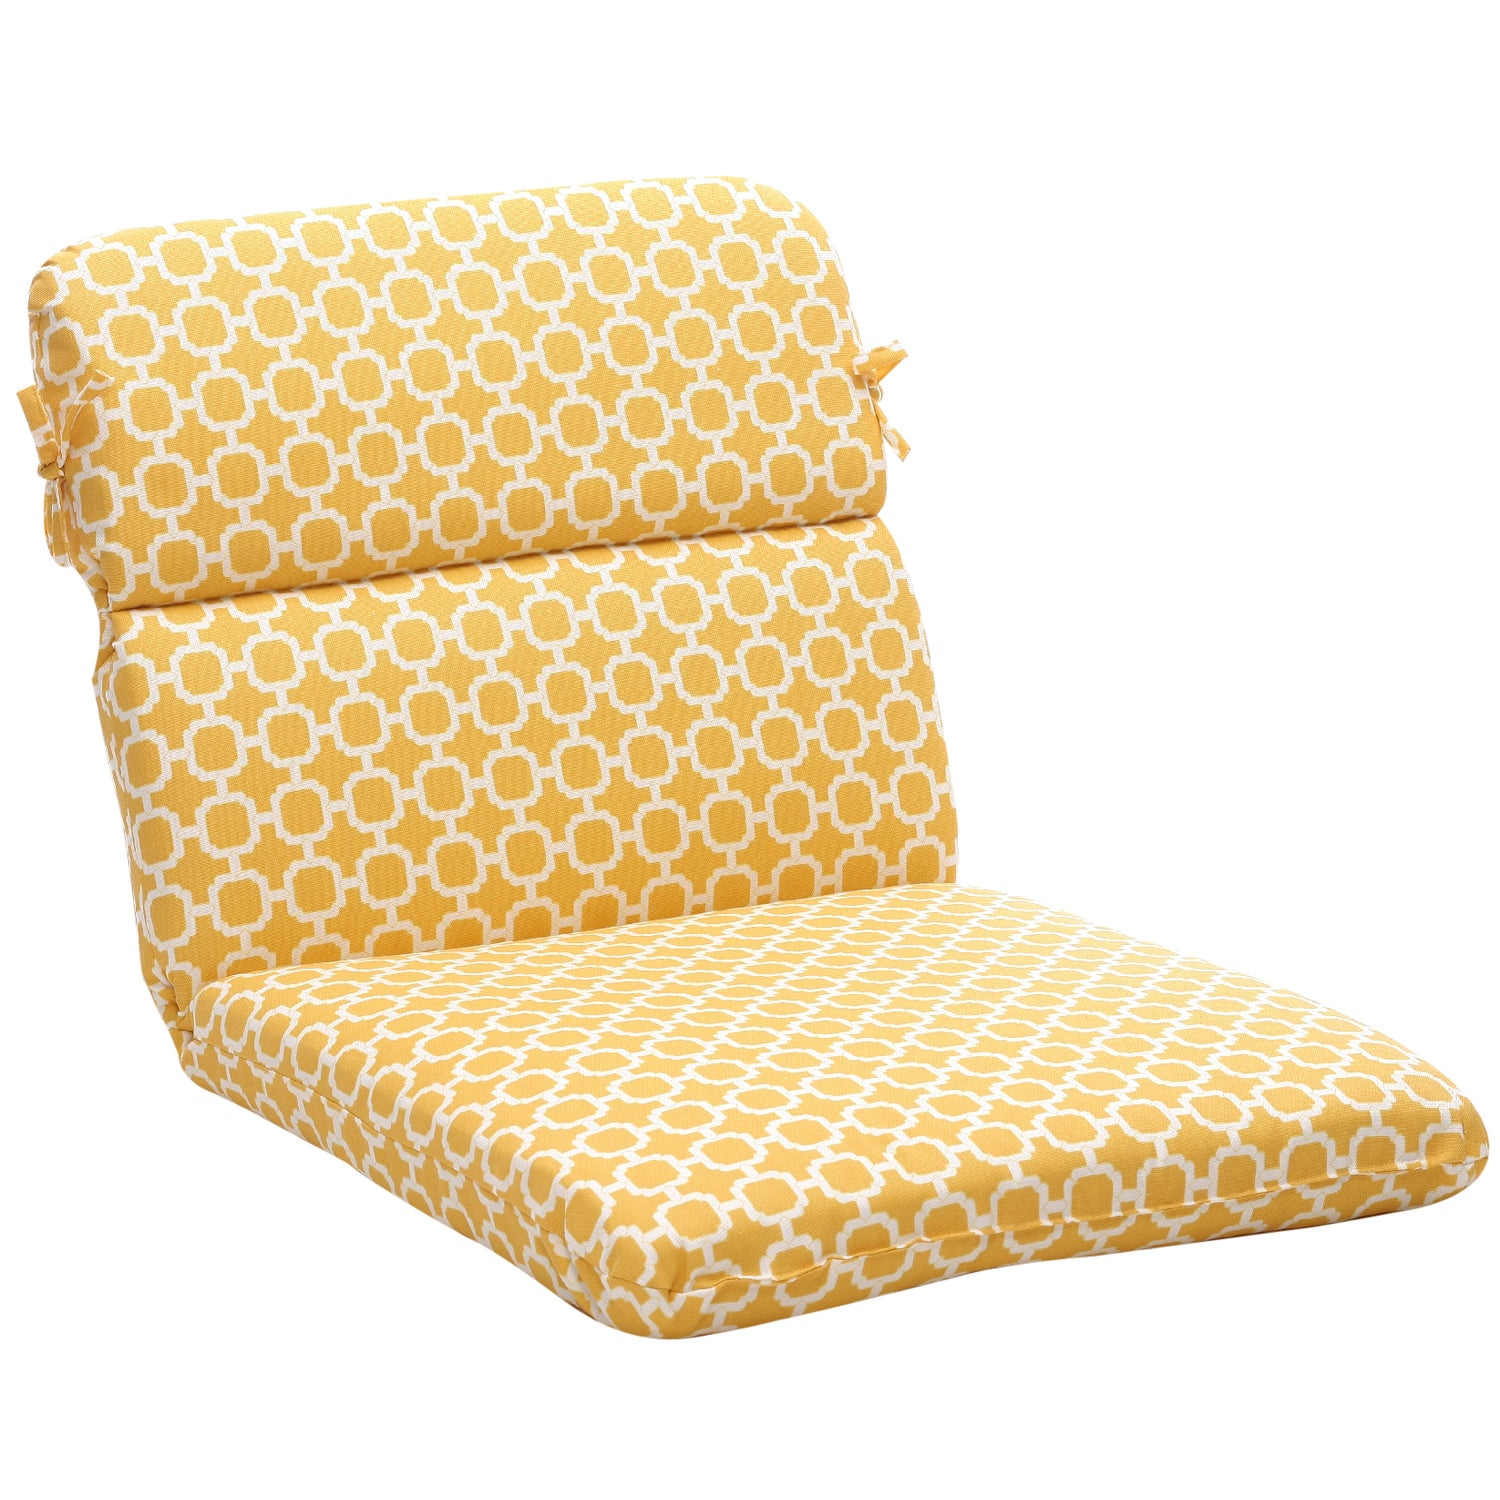 Rounded Yellow White Geometric Outdoor Chair Cushion